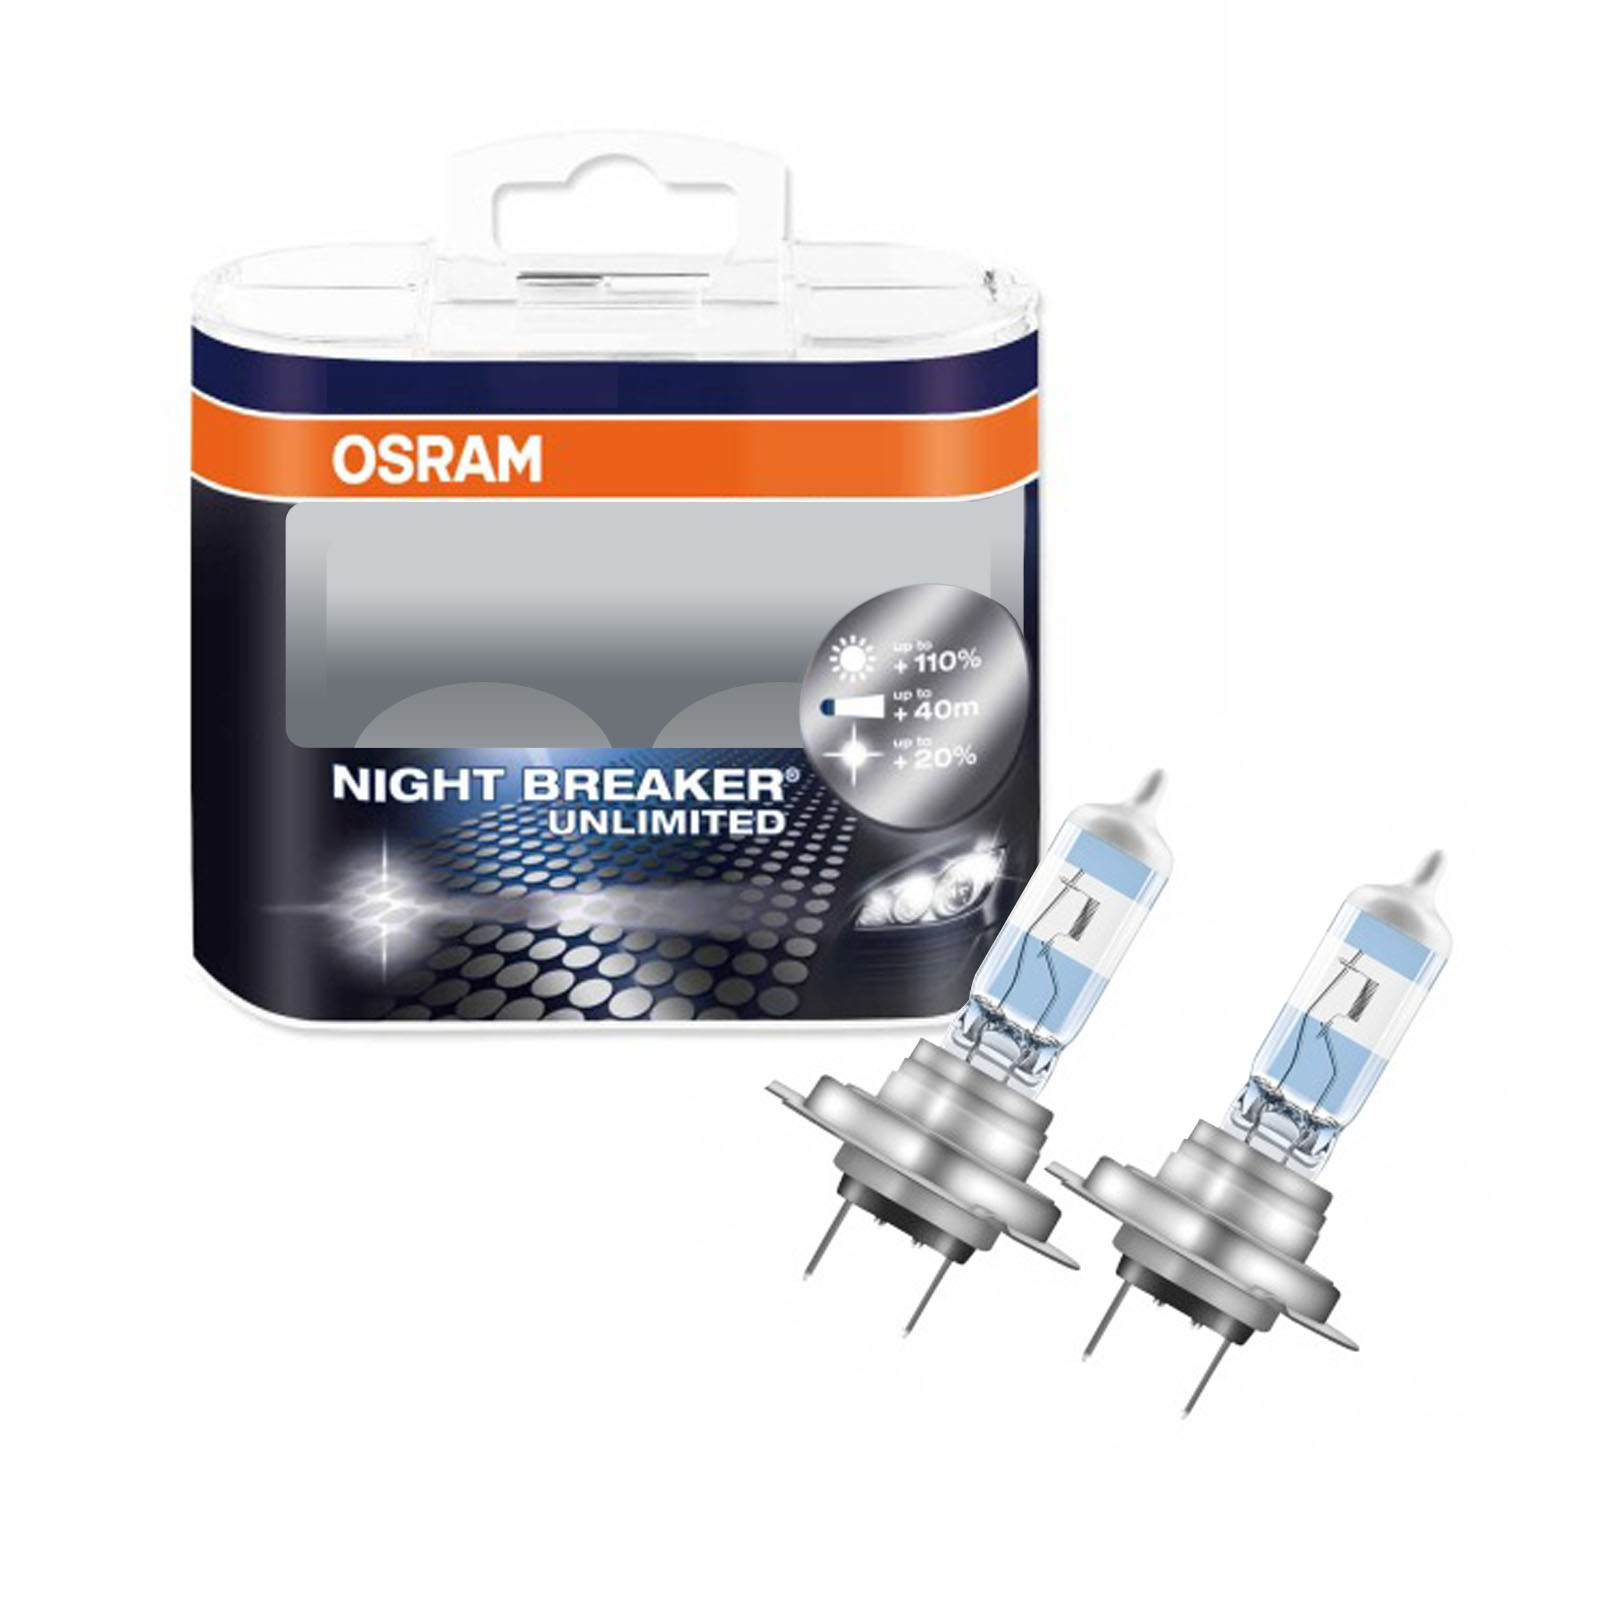 h7 osram night breaker unlimited high main full beam headlight bulbs ebay. Black Bedroom Furniture Sets. Home Design Ideas